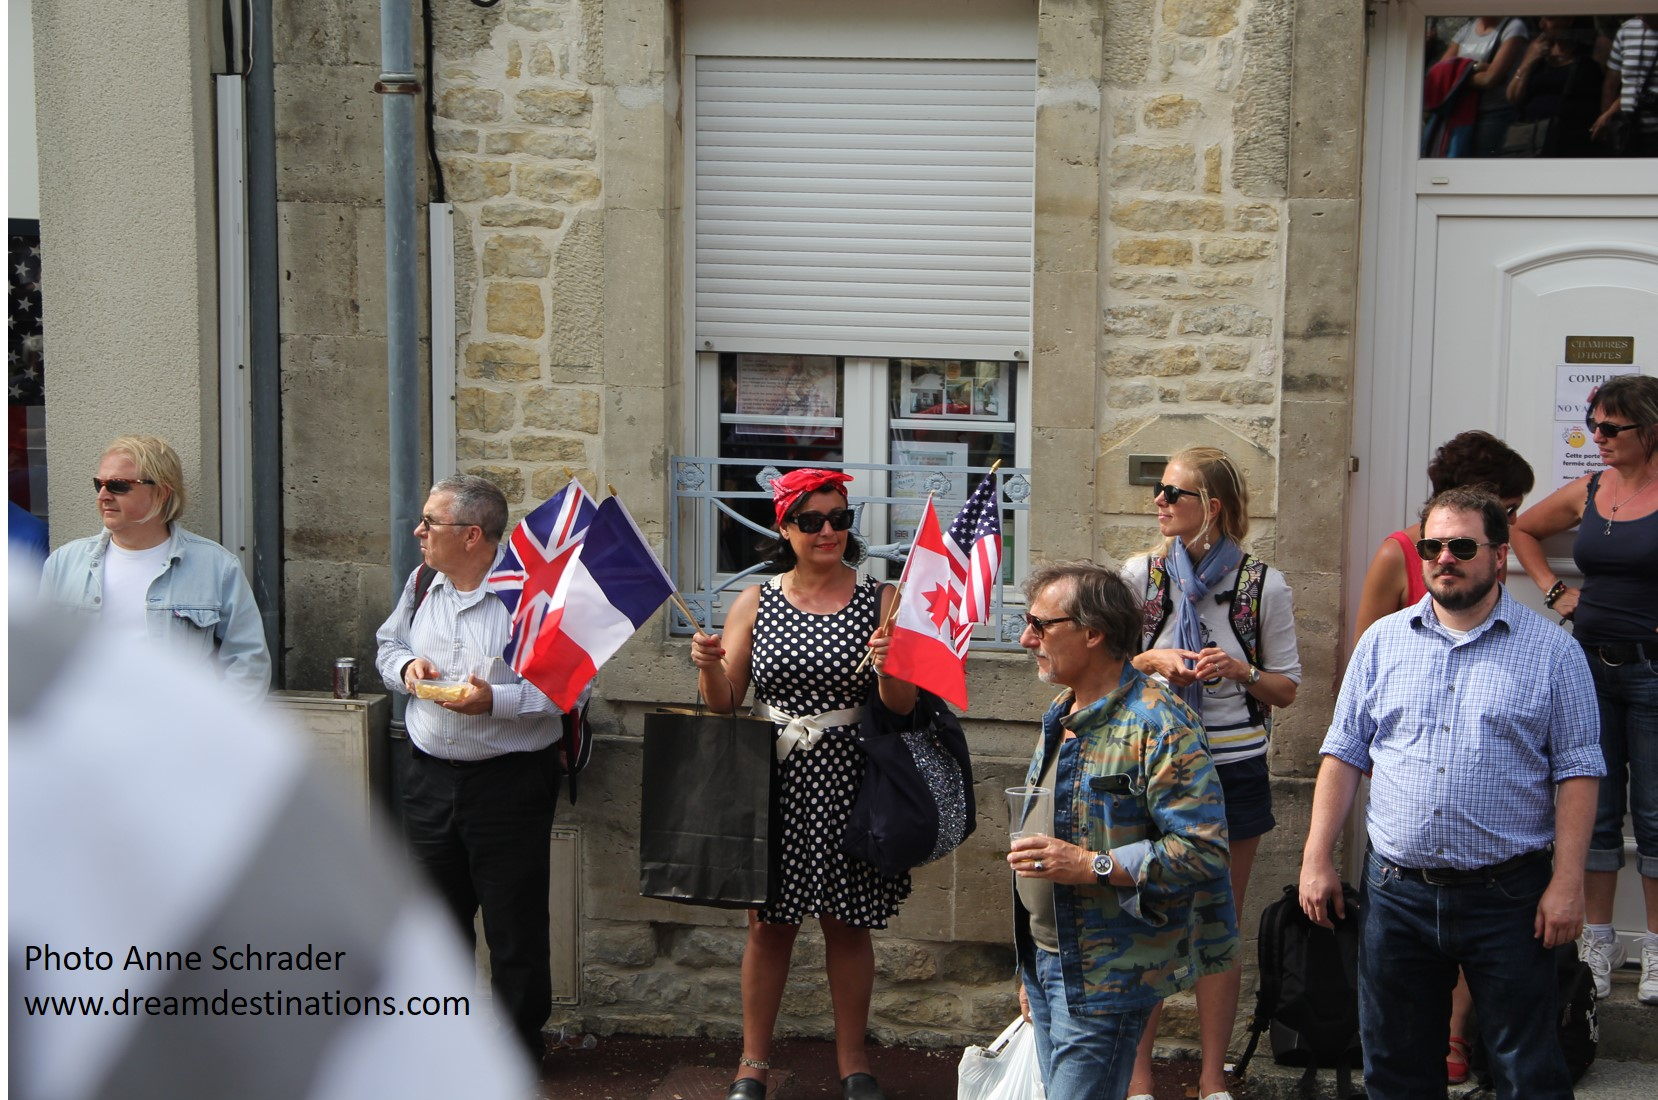 Watching the parade in Ste. Mere Eglise during the D Day Festival on 6 June 2014